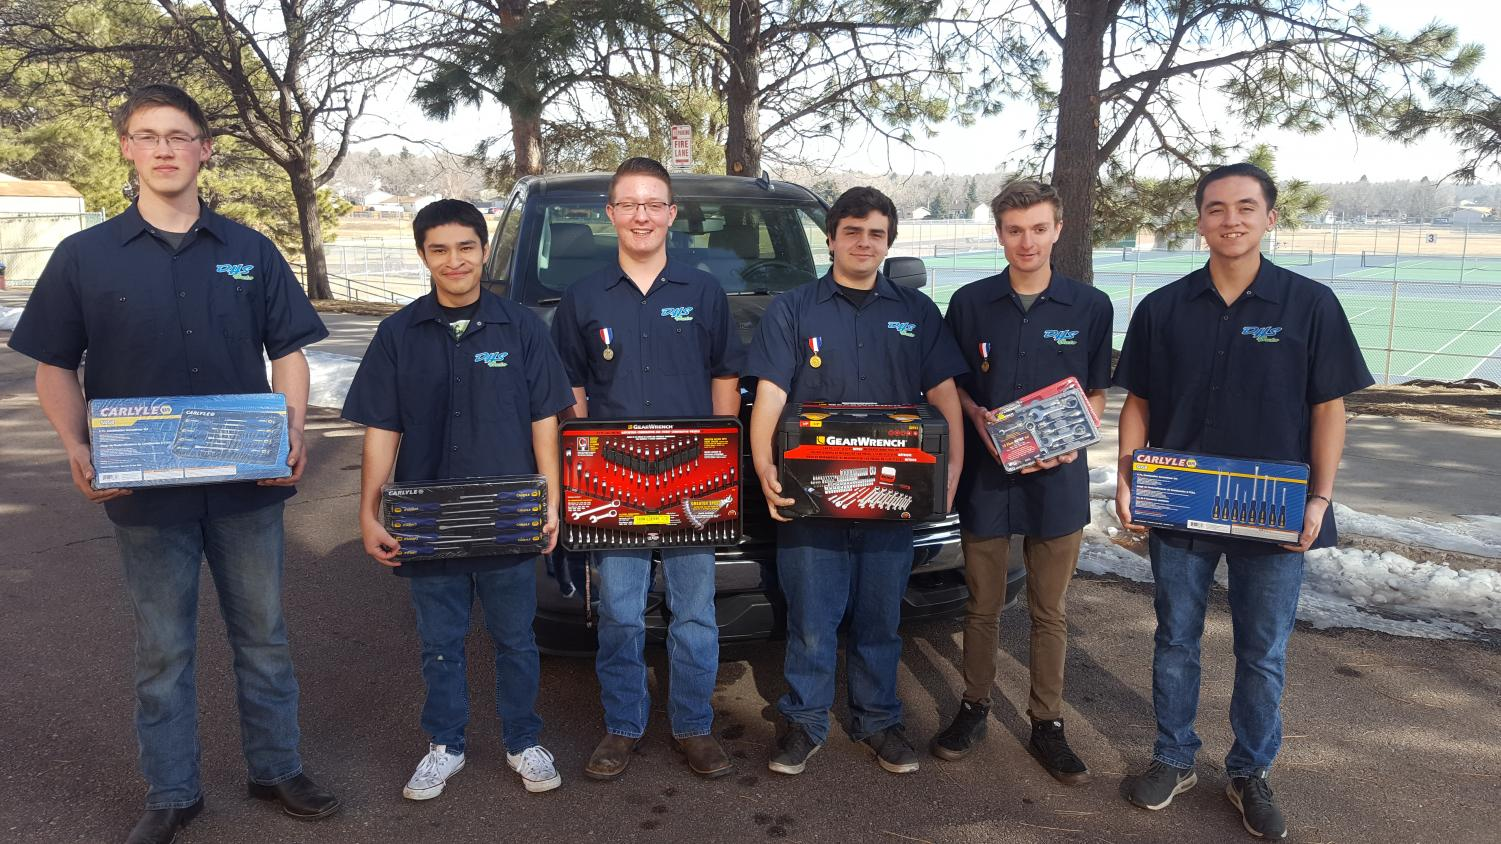 Pictured here are Doherty students with Tool prizes from Pikes Peak Napa Auto Care.  . They are standing in front of a 2017 Silverado that we won at SKILLS USA nationals in 2018.